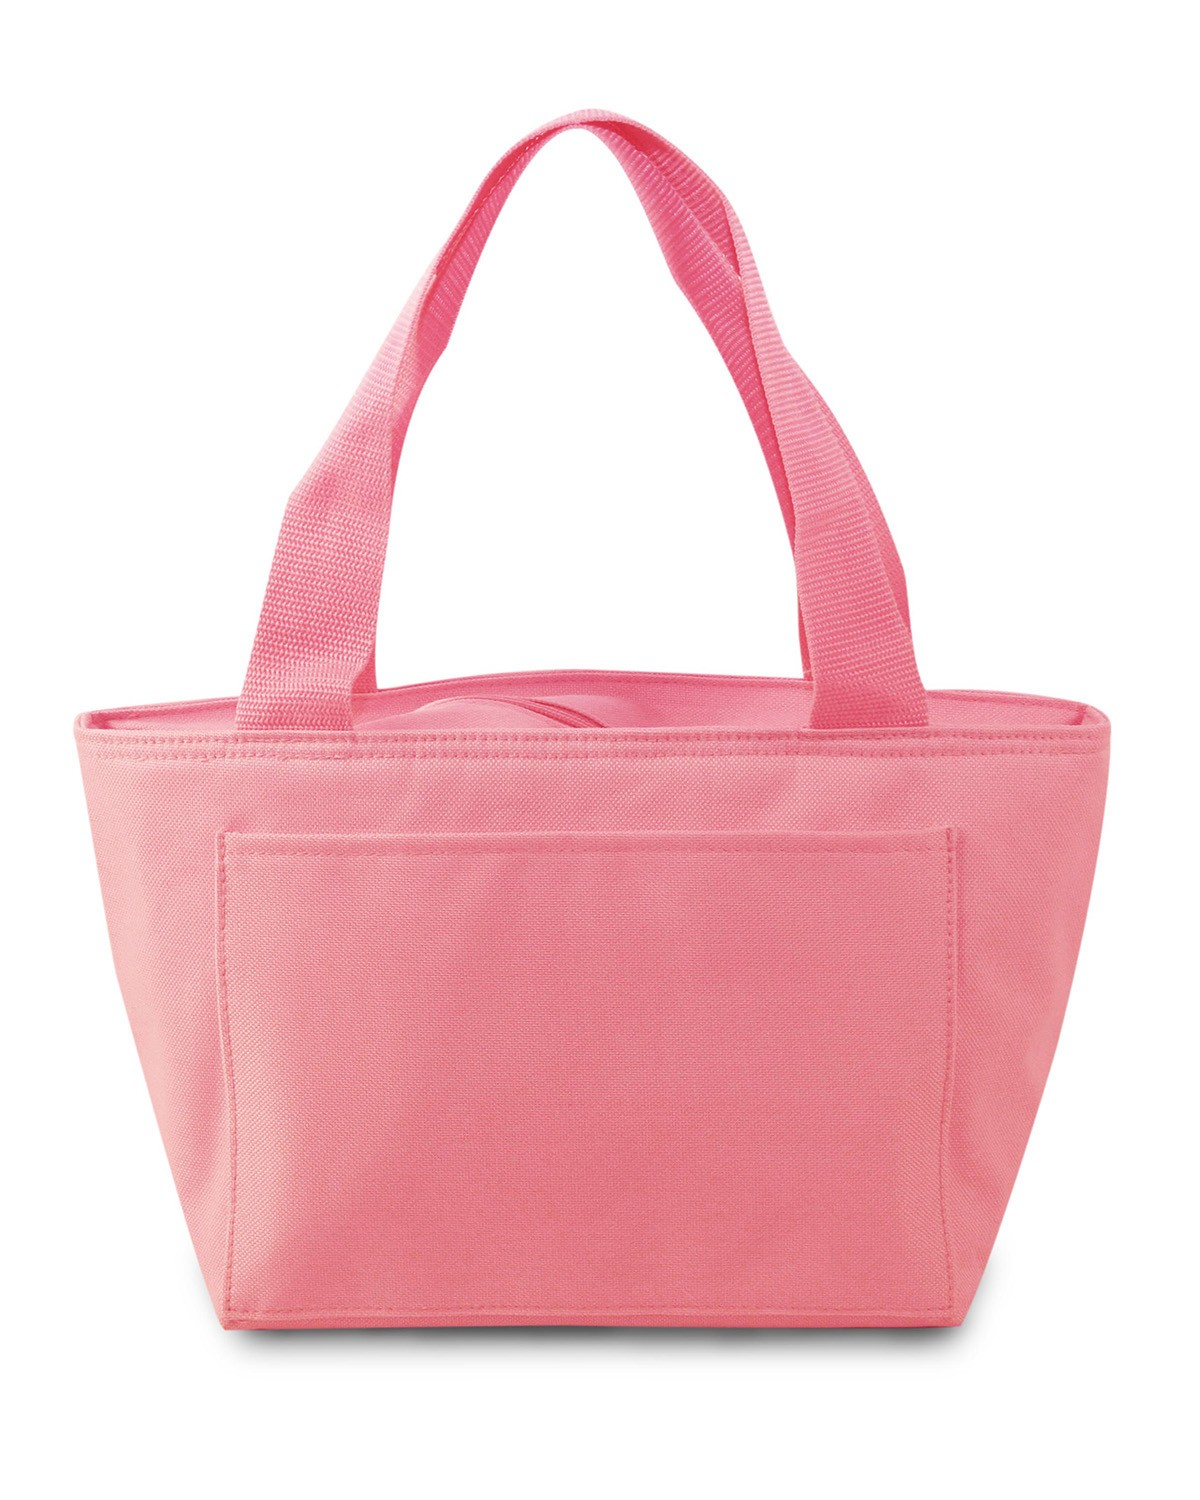 8808 Liberty Bags LIGHT PINK